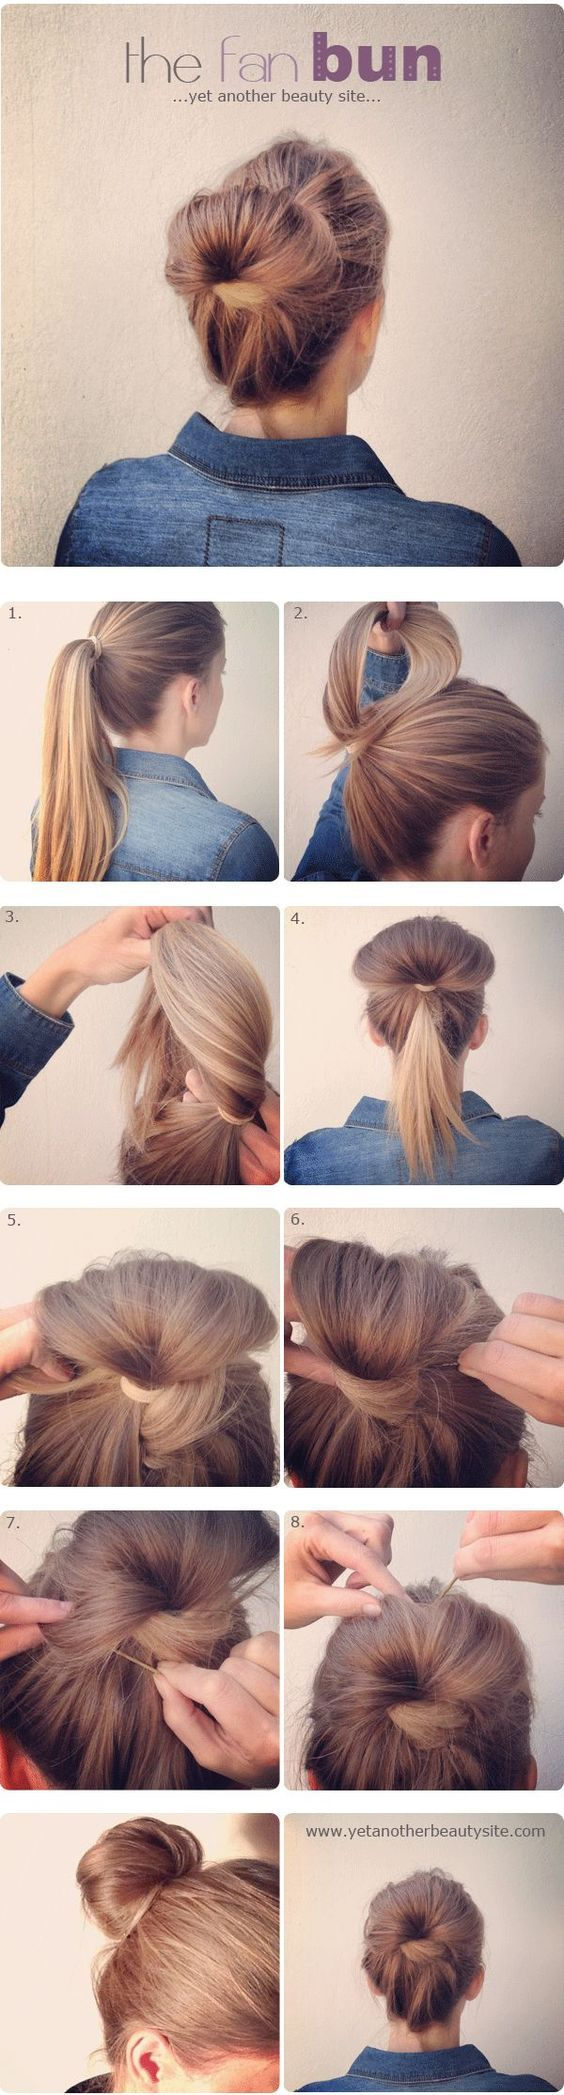 30 Elegant Hairstyles To Make You Look Pretty In Every Occasion - Trend To Wear